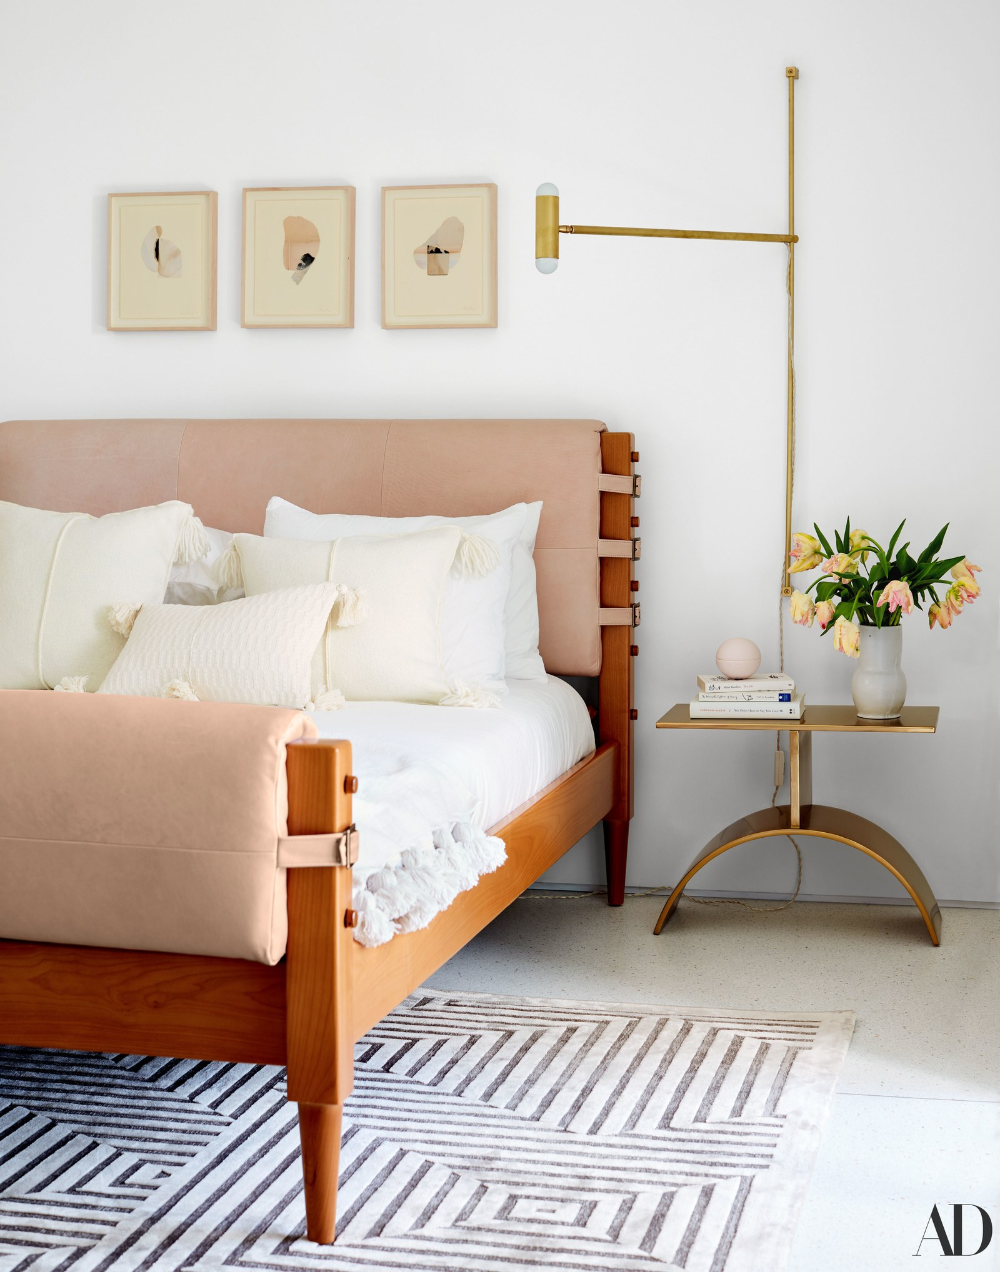 Mandy Moore Takes AD Inside Her Dreamy 1950s Home